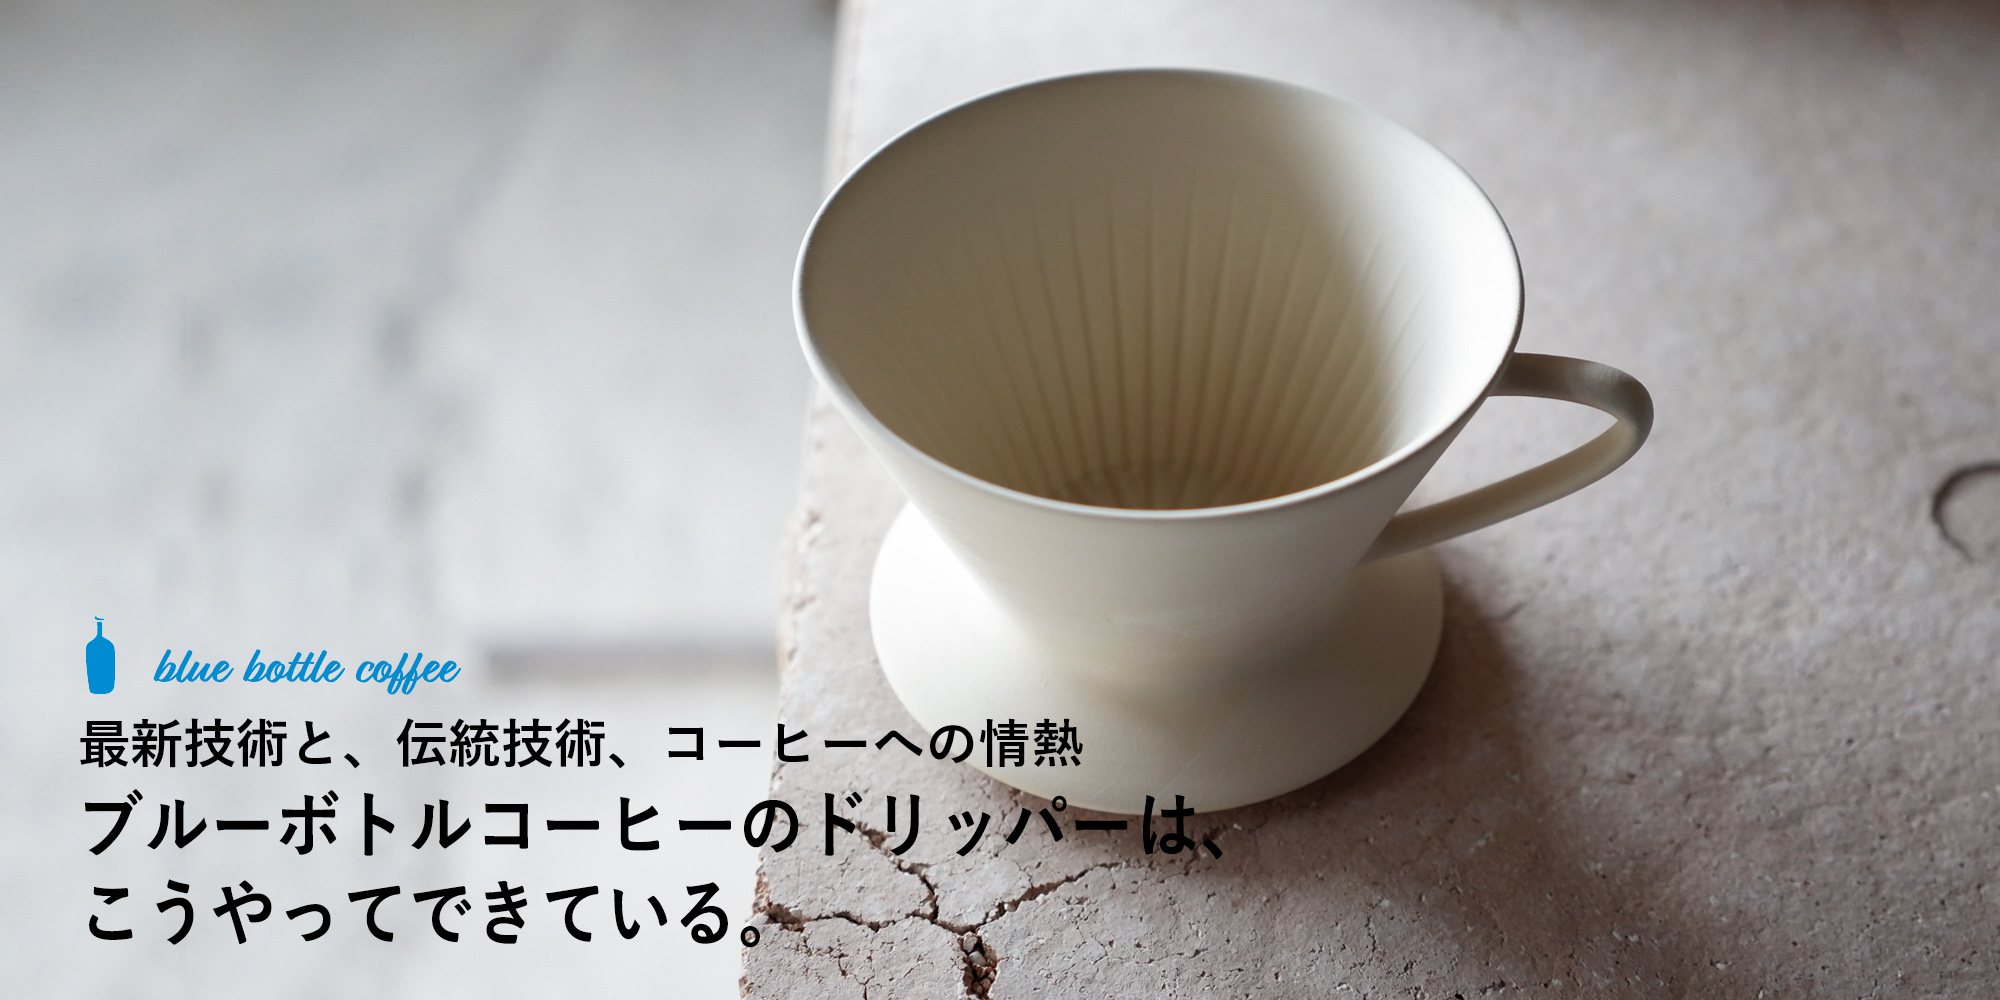 BLUE BOTTLE COFFEE ドリッパー